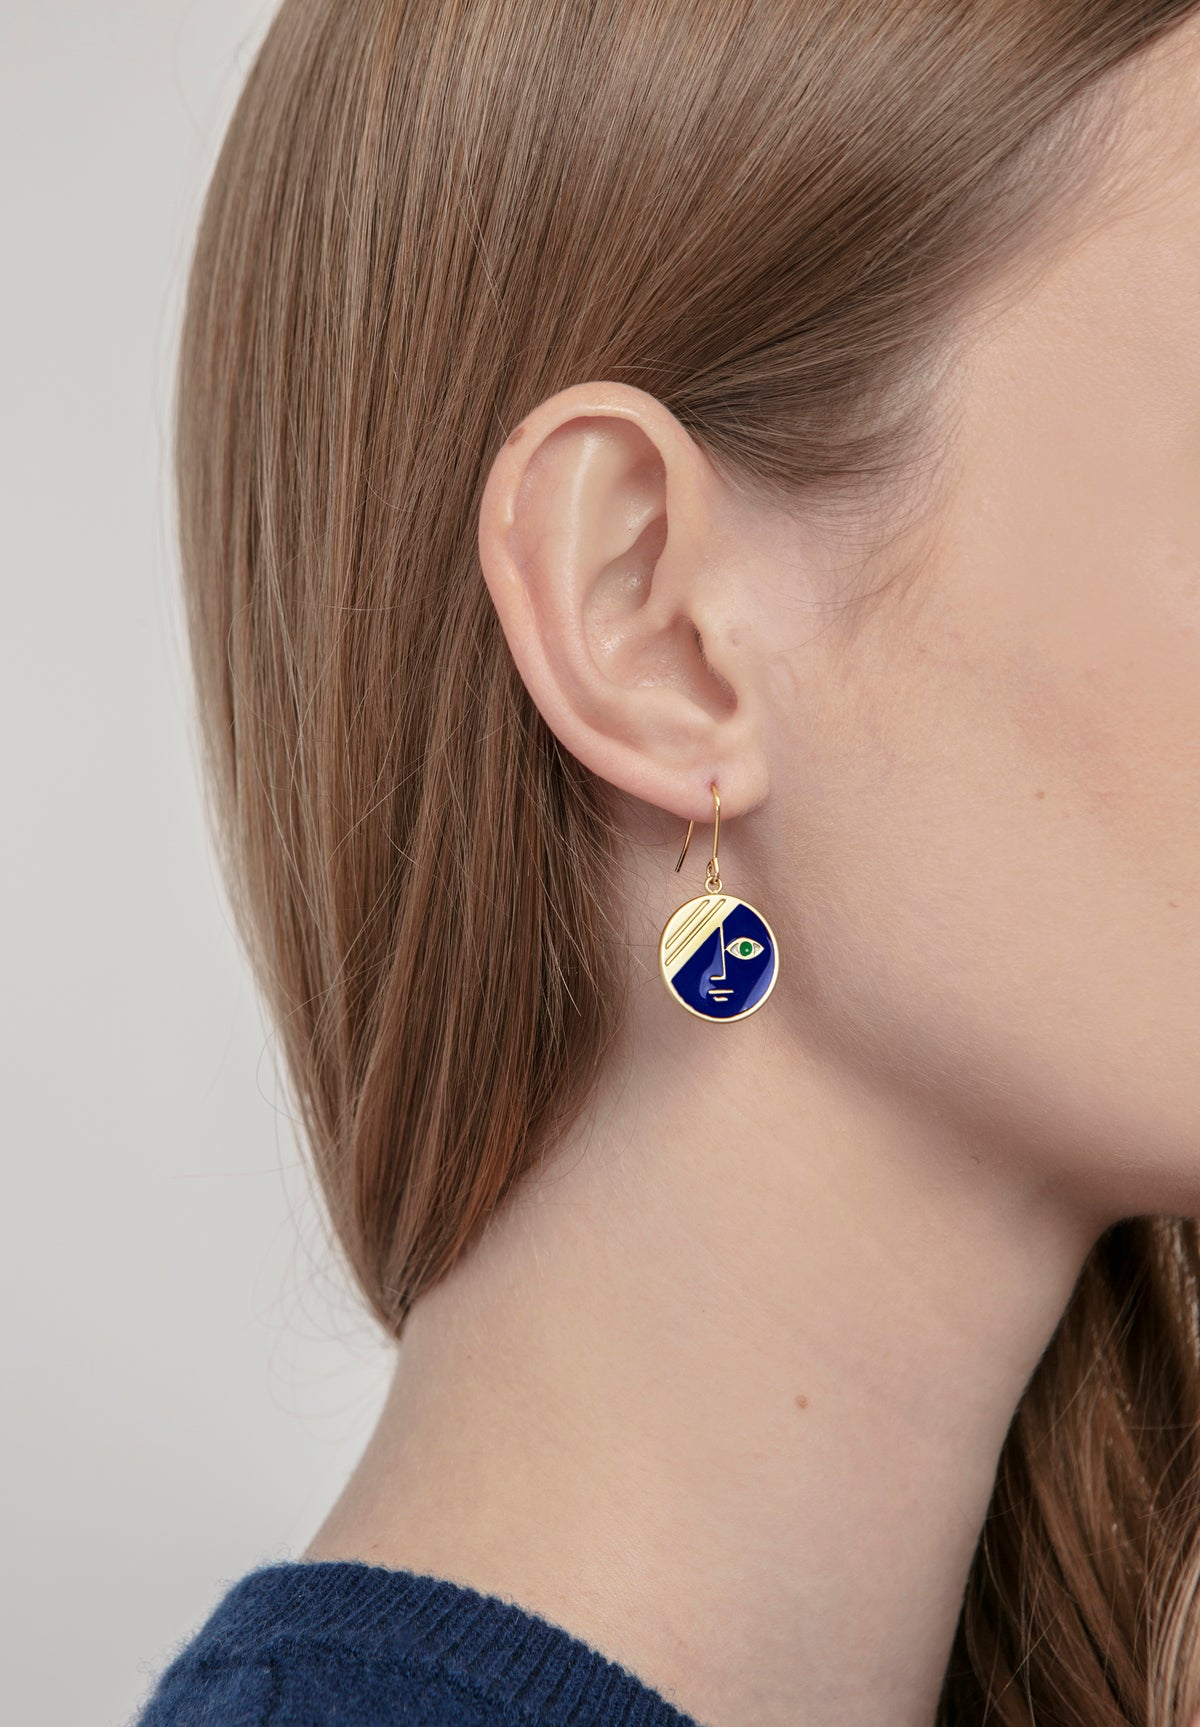 Image of Mini ECLIPSE Earrings - Stainless steel